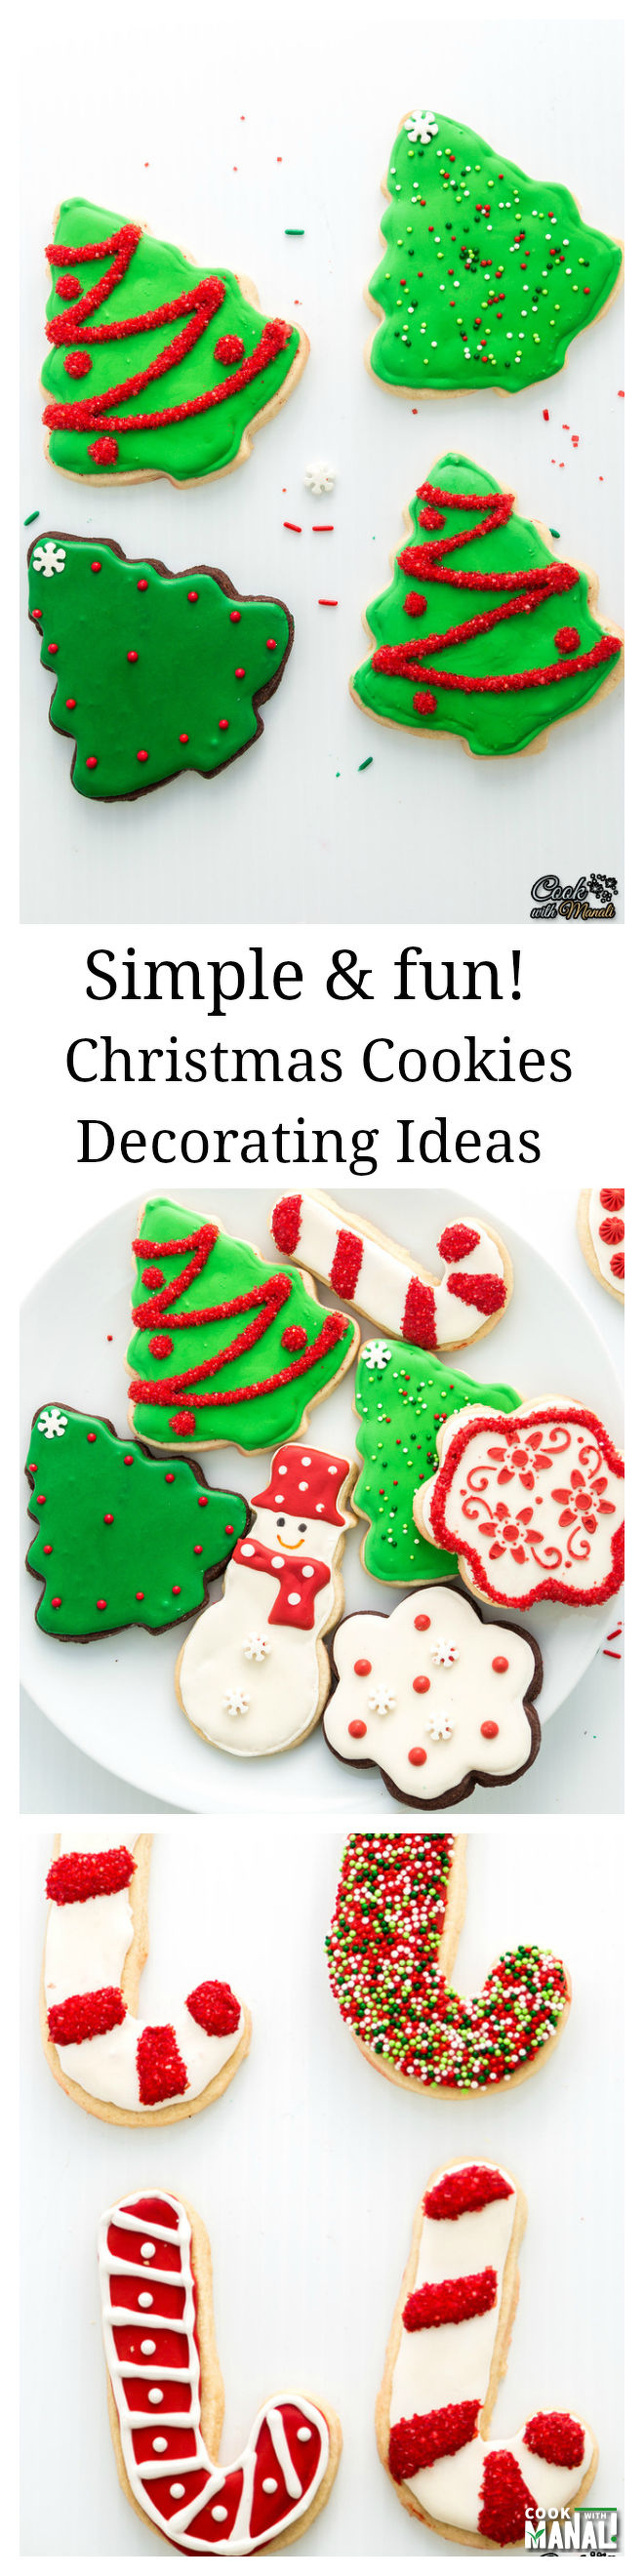 Christmas-Sugar-Cookies-Decorating-Ideas Collage